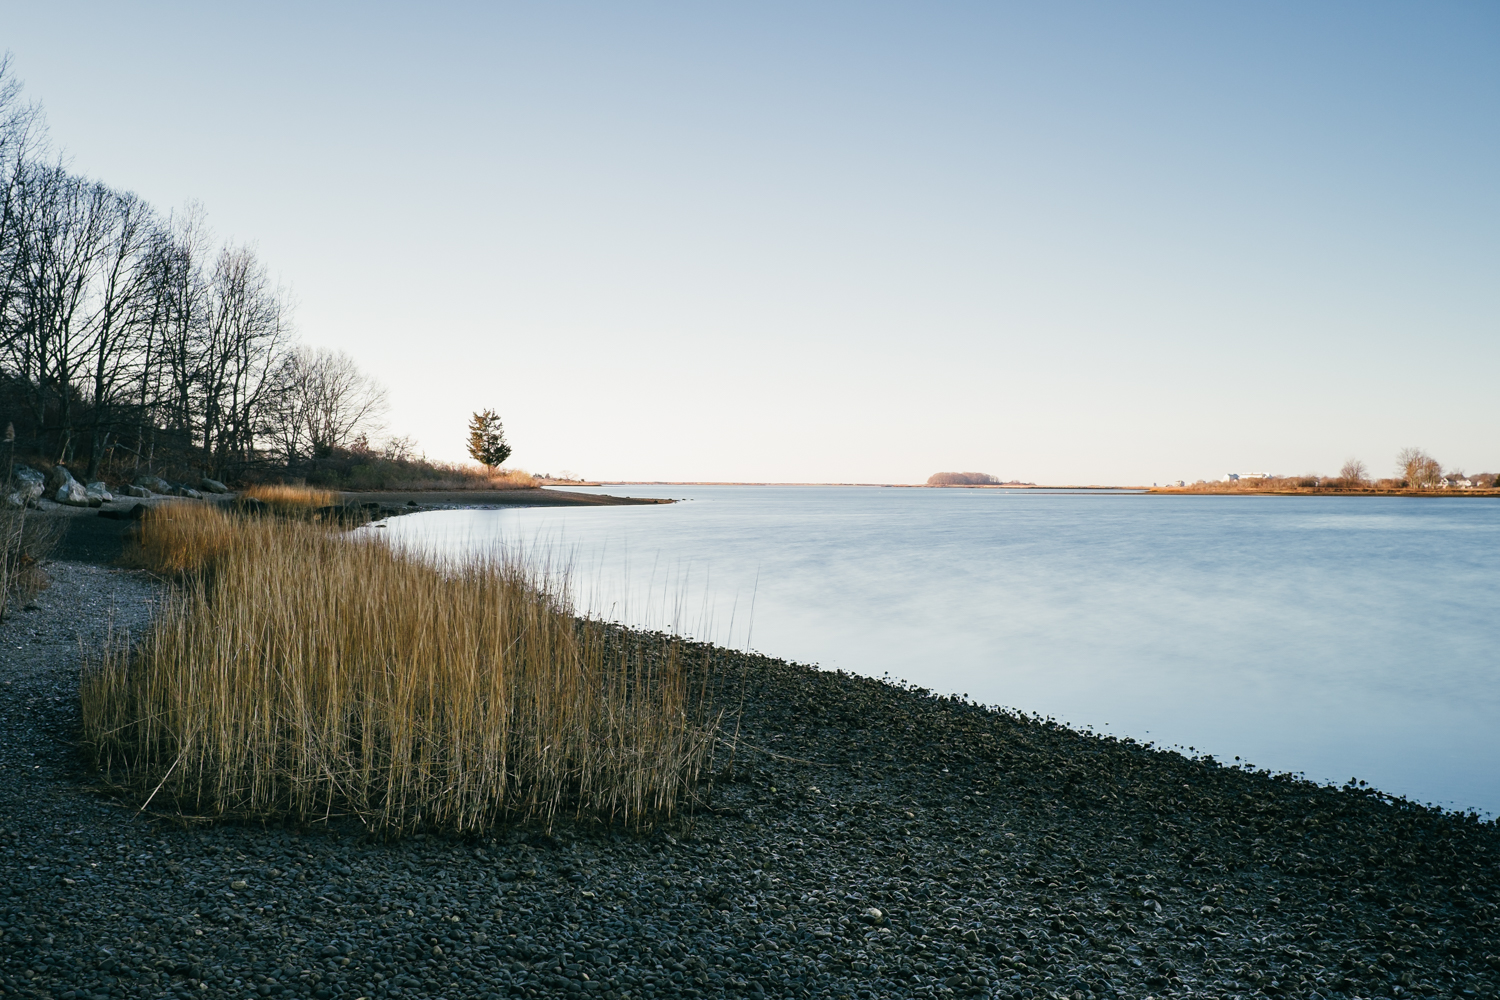 Morning hike at Bluff Point State Park -- 45s exposure